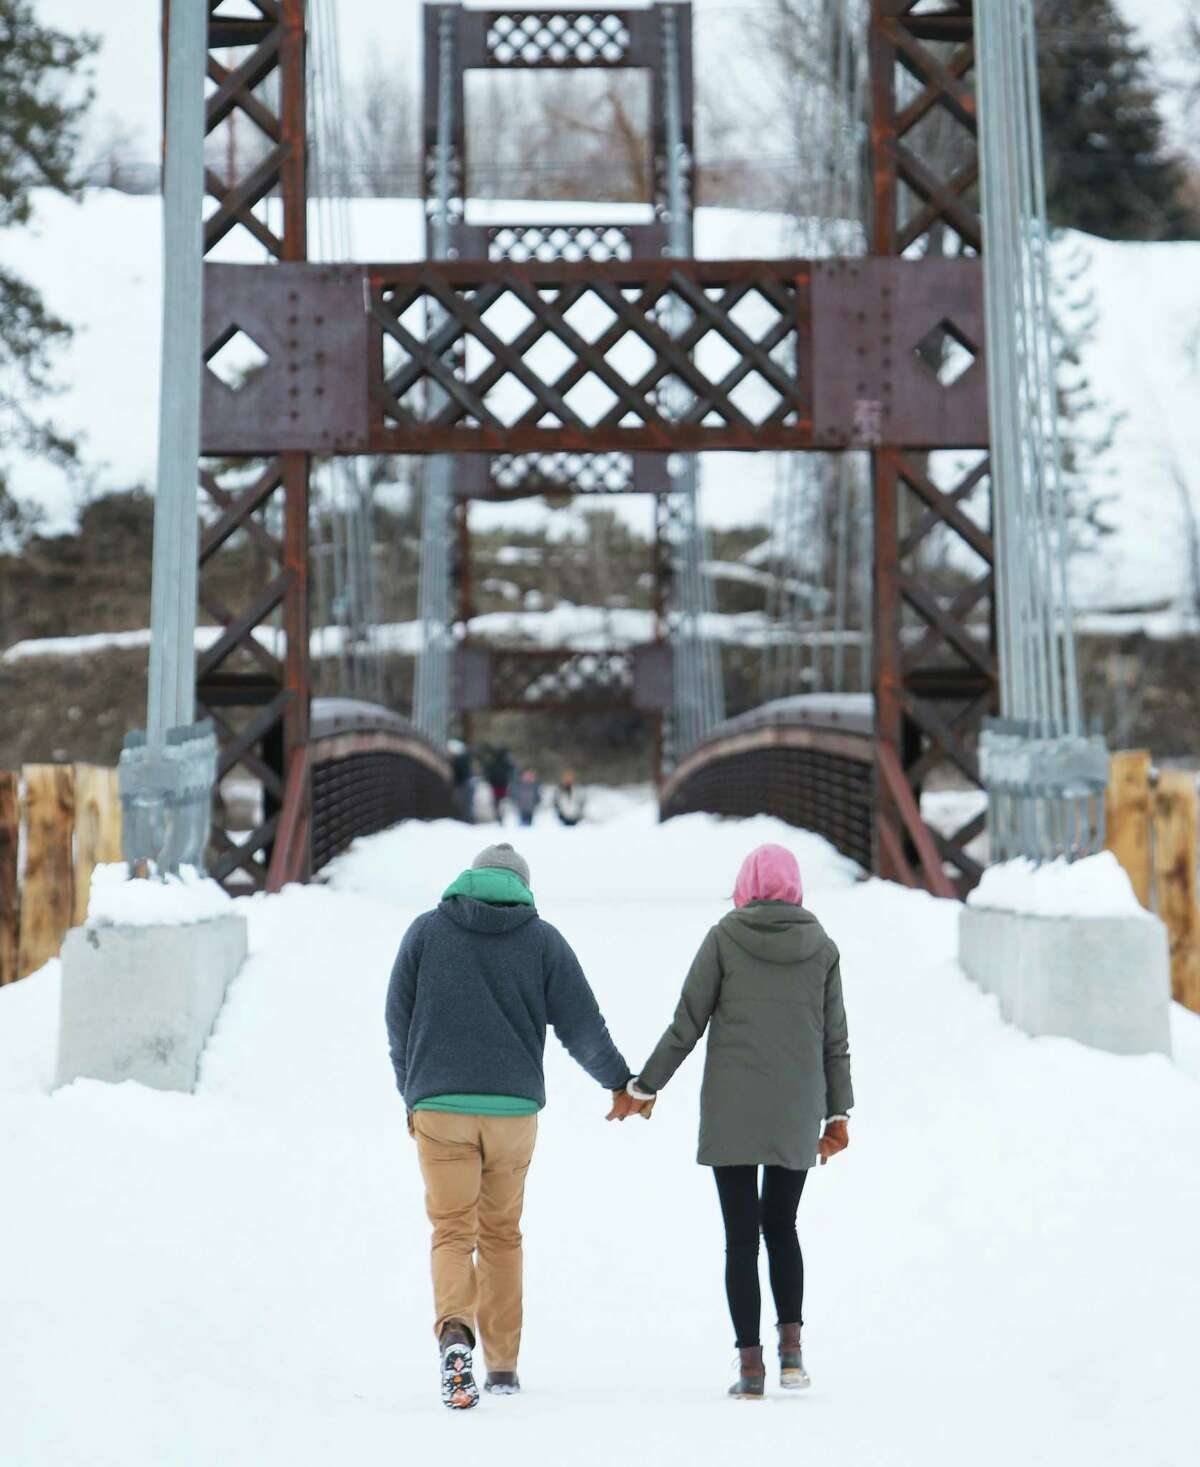 A couple walks over a snow-covered pedestrian bridge in Winthrop, March 2, 2019.